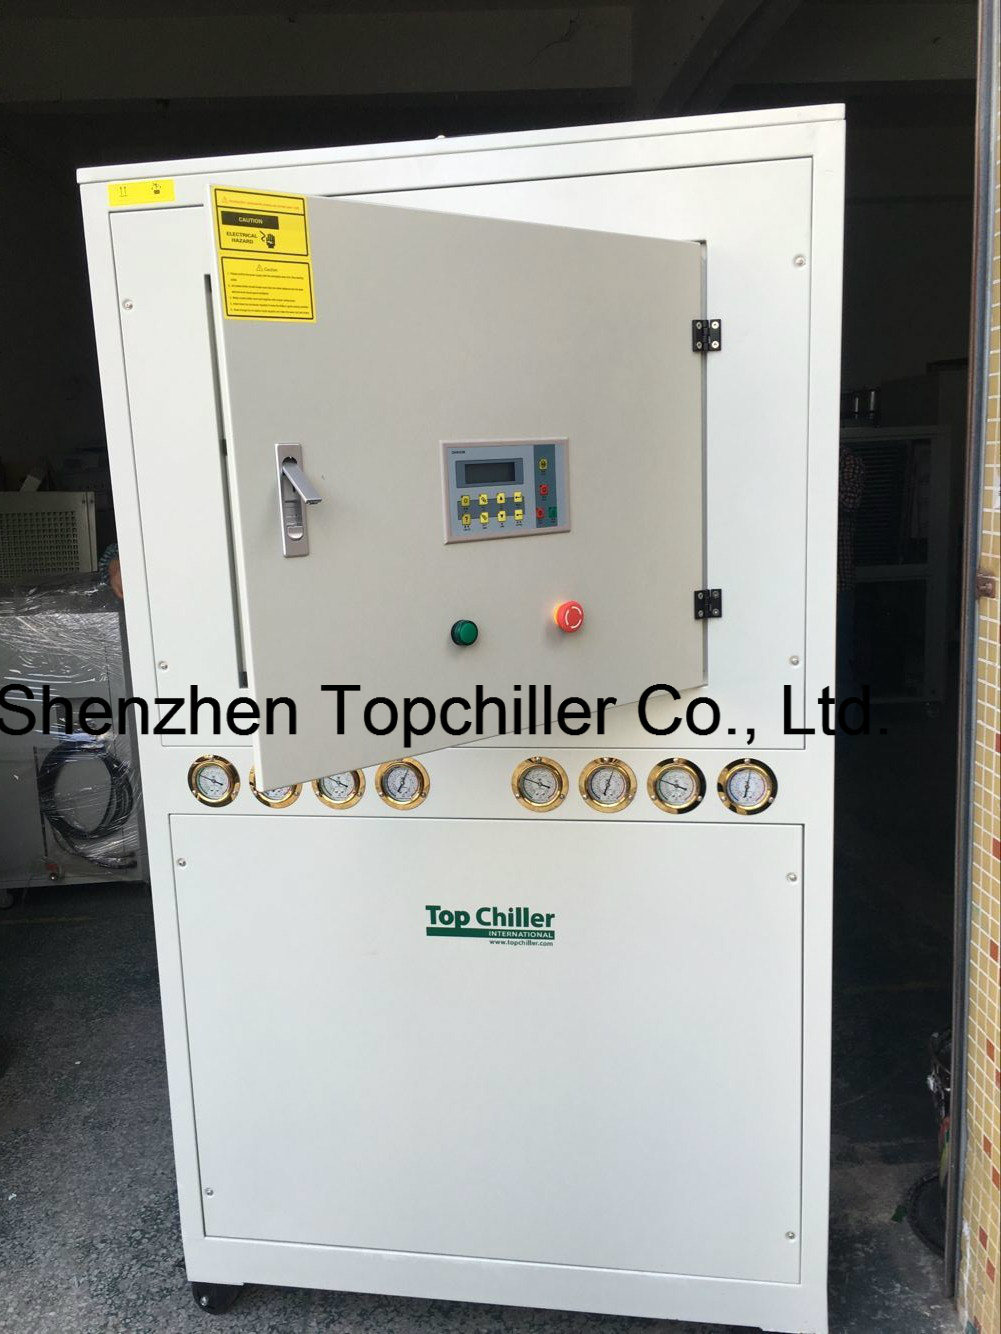 25kw-38kw Portable Air Cooled Chiller for Semi-Conductor Cooling